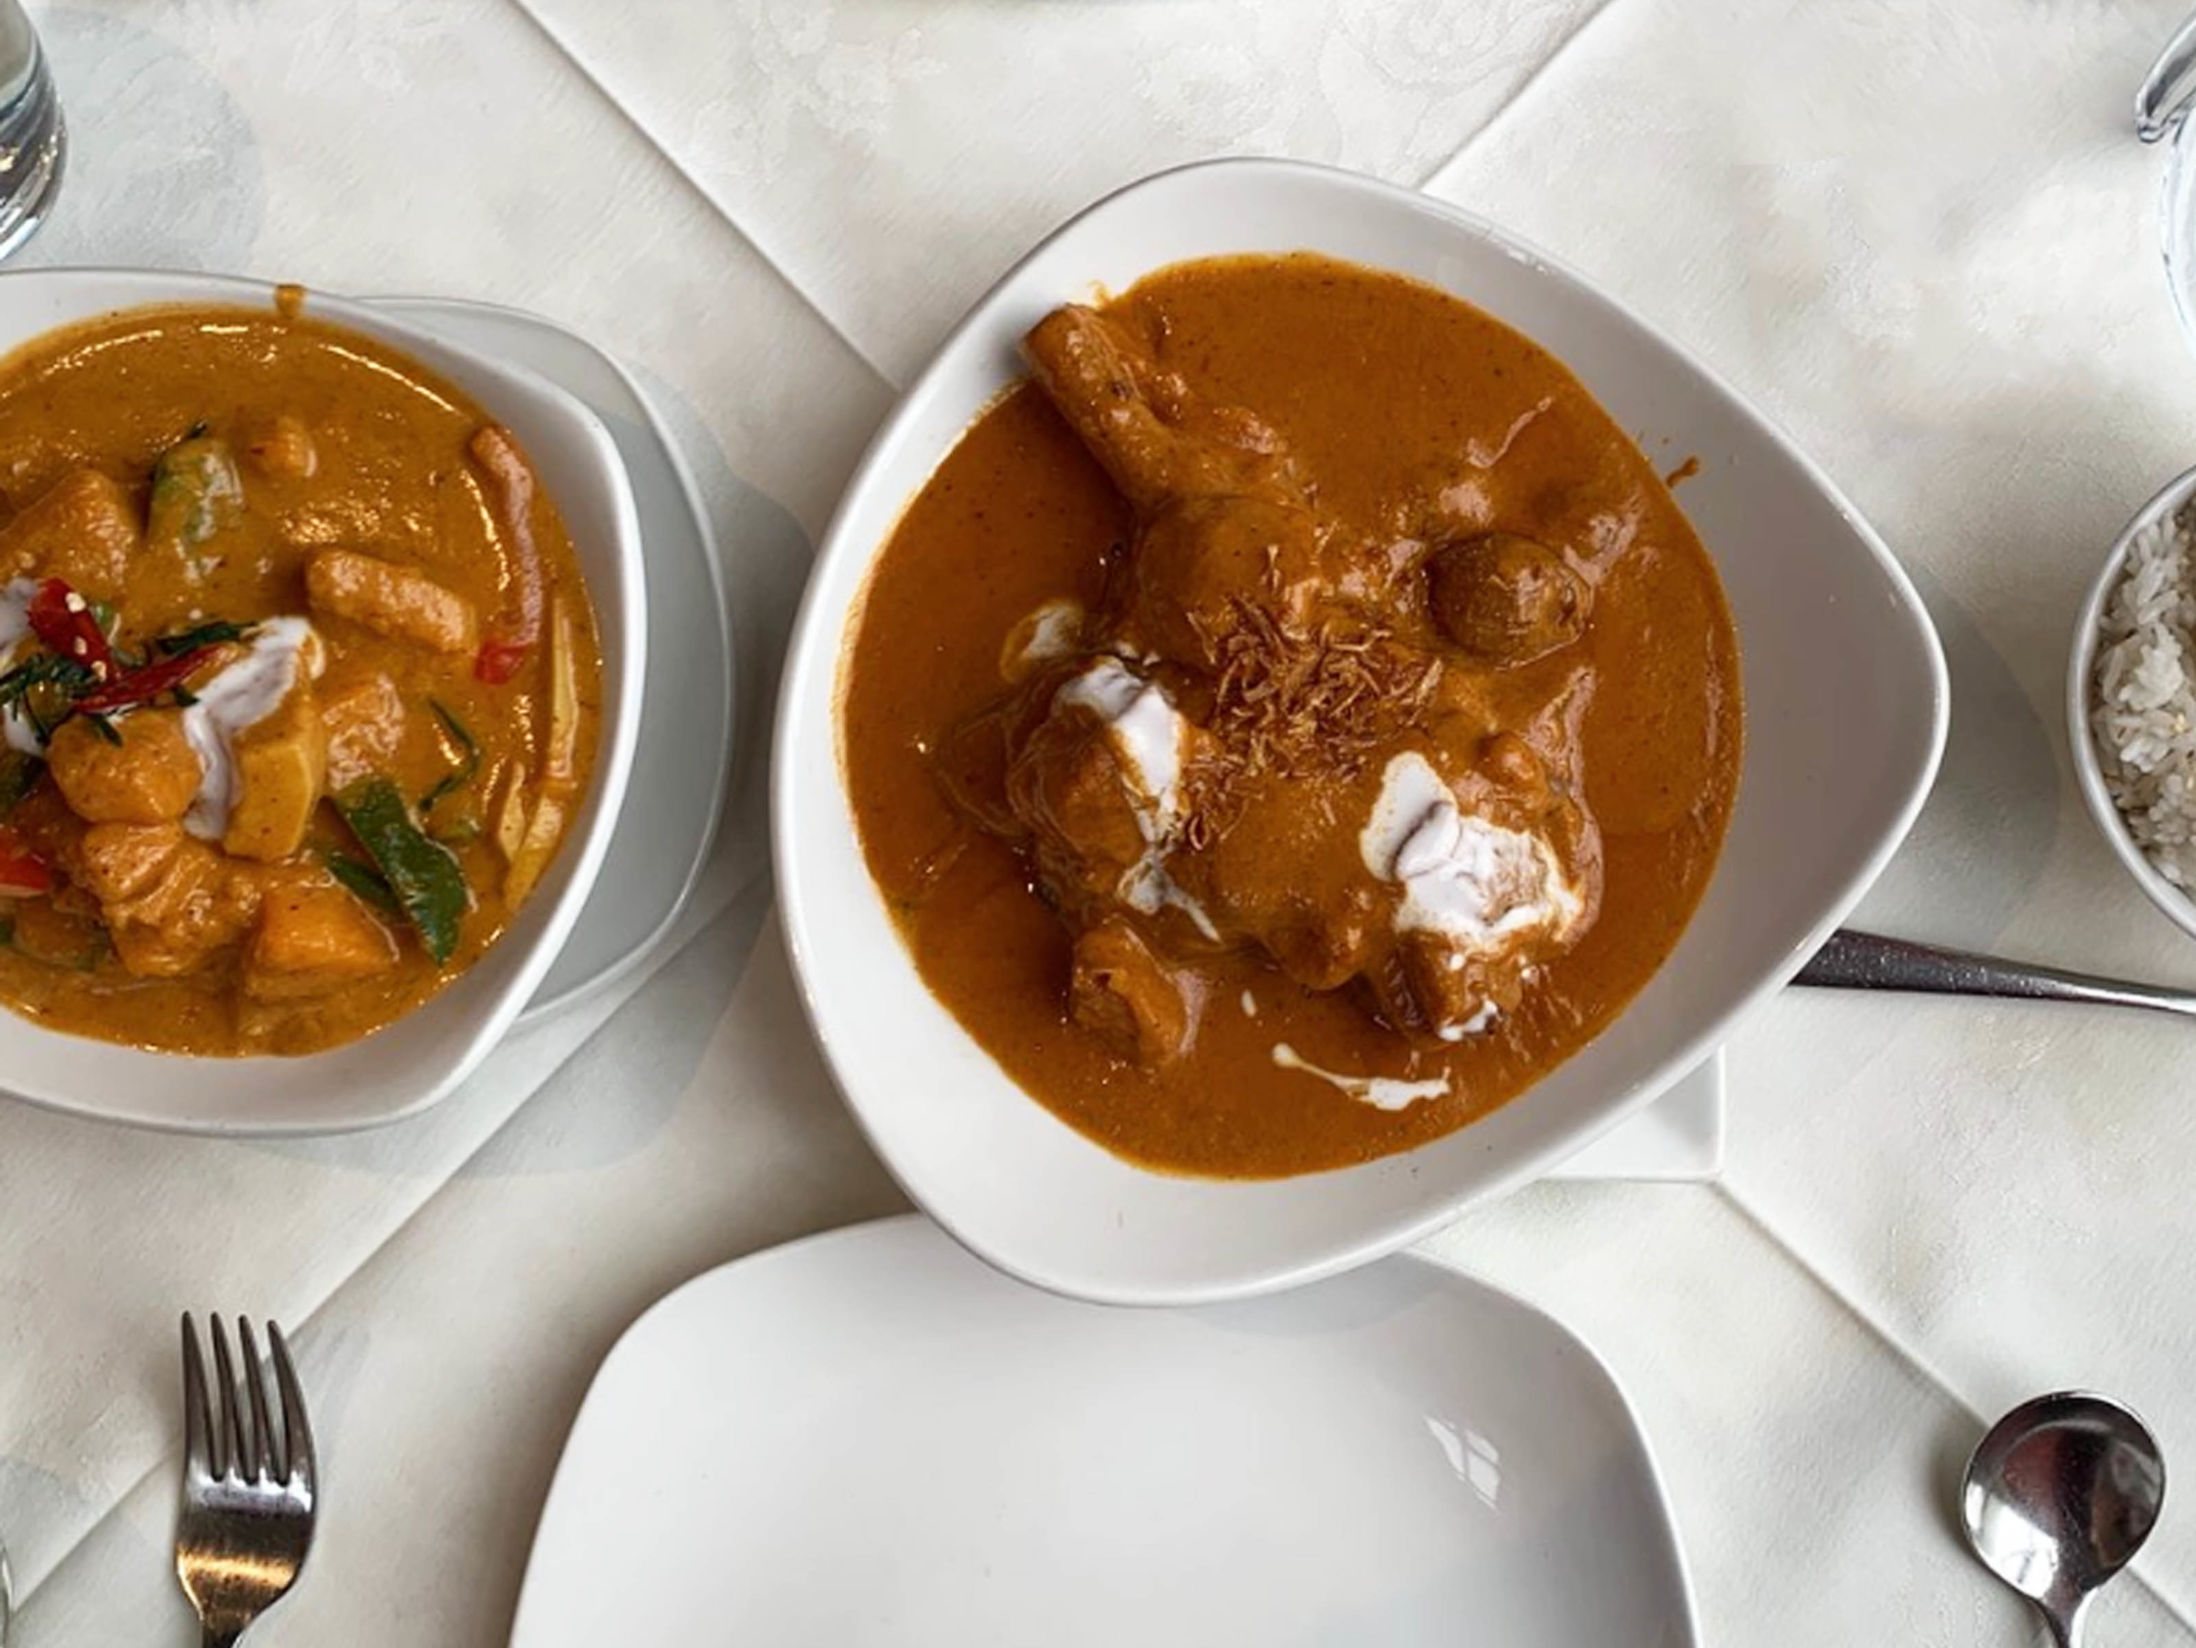 Siam Thai & Teppan-Yaki - Best Restaurants in Chester